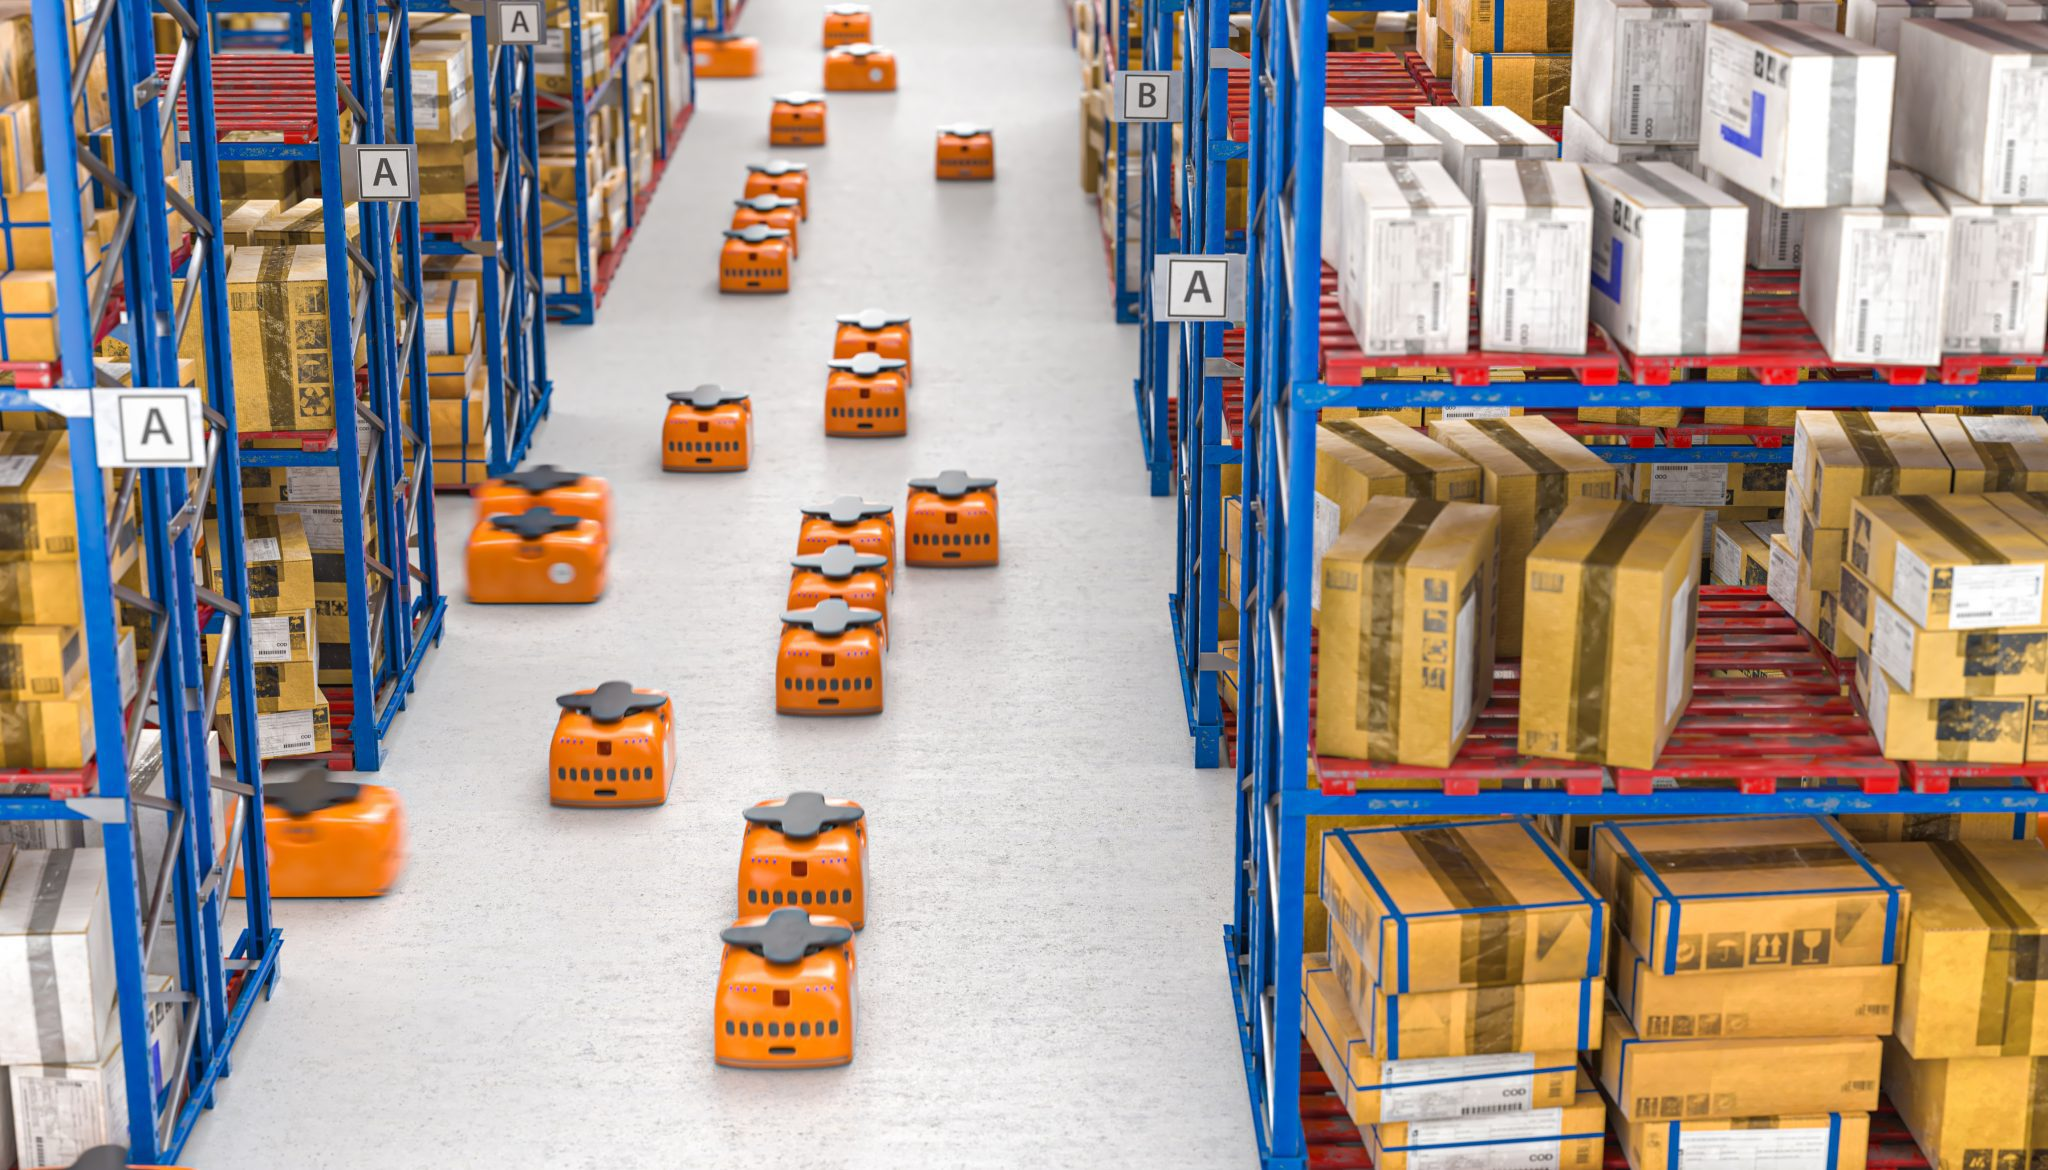 Modern warehouse with AGVs going down aisle.